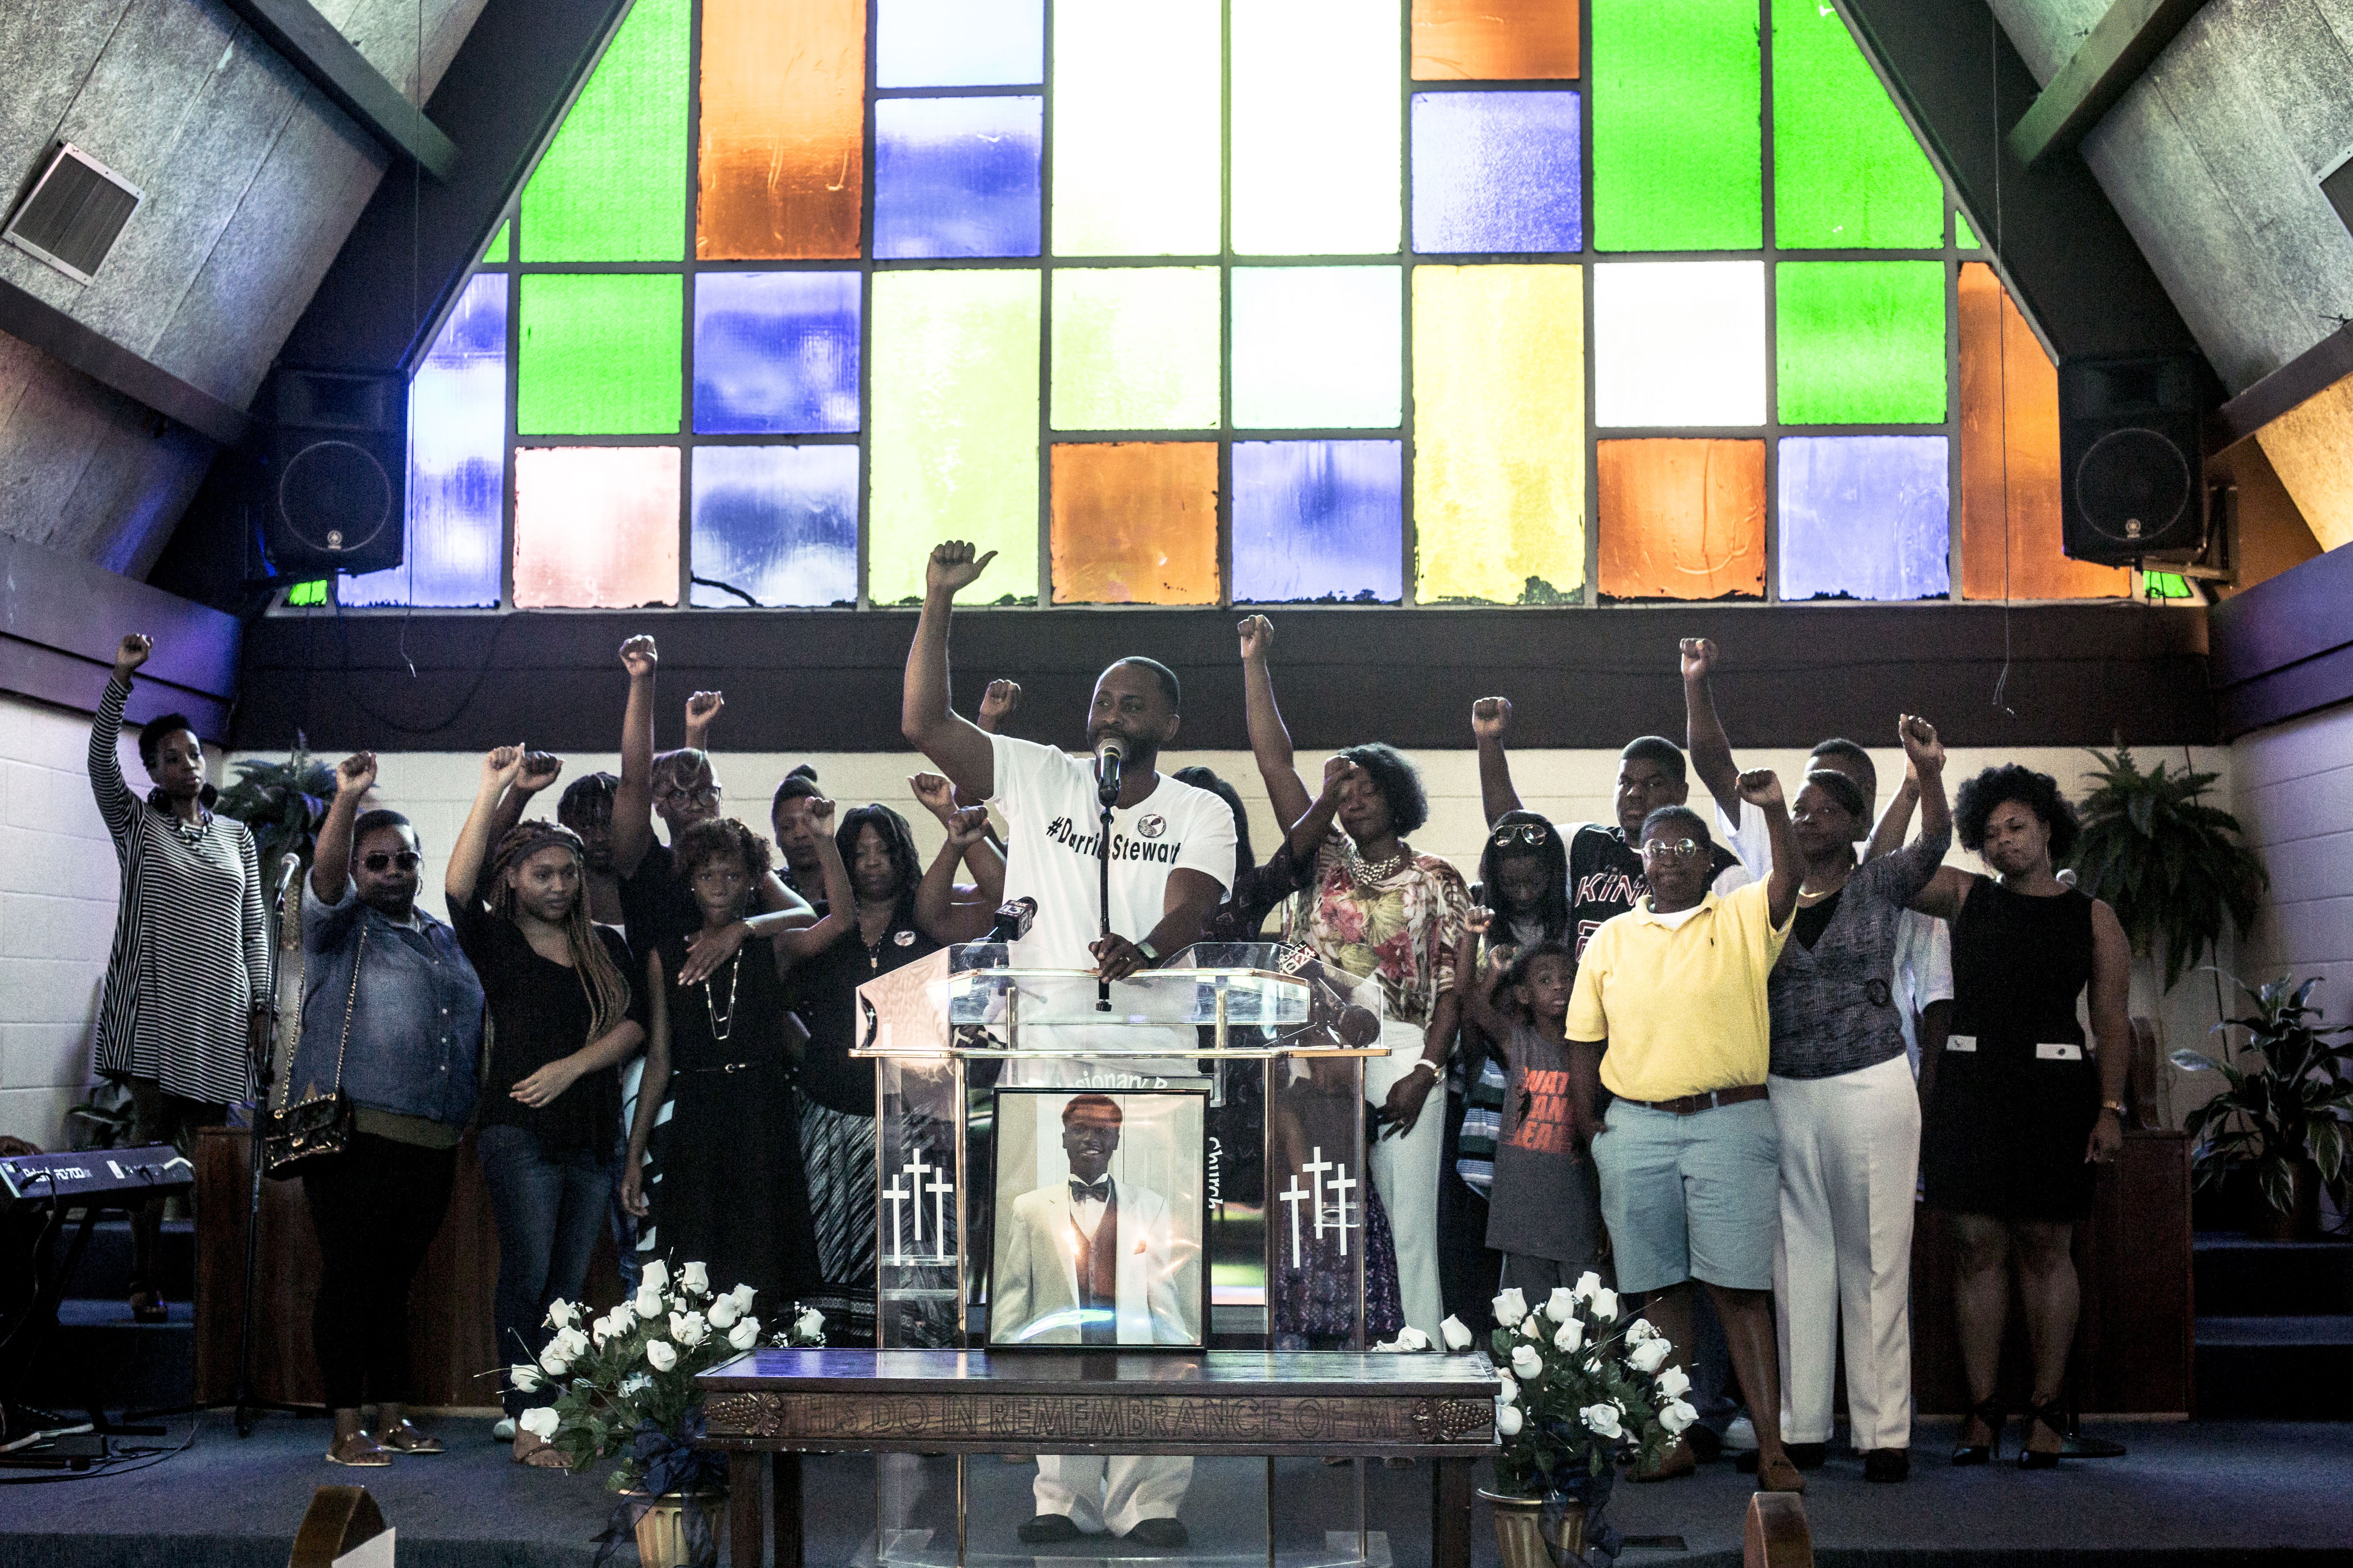 July 17, 2016 - Memphis, TN: Pastor Earle Fisher (center) stands with the family of Darrius Stewart, a 19-year-old-black man who was killed during a traffic stop in July 2016. Stewart's photograph is at the pulpit. Stewart's mother, Mary, was also included on the black list for city hall.